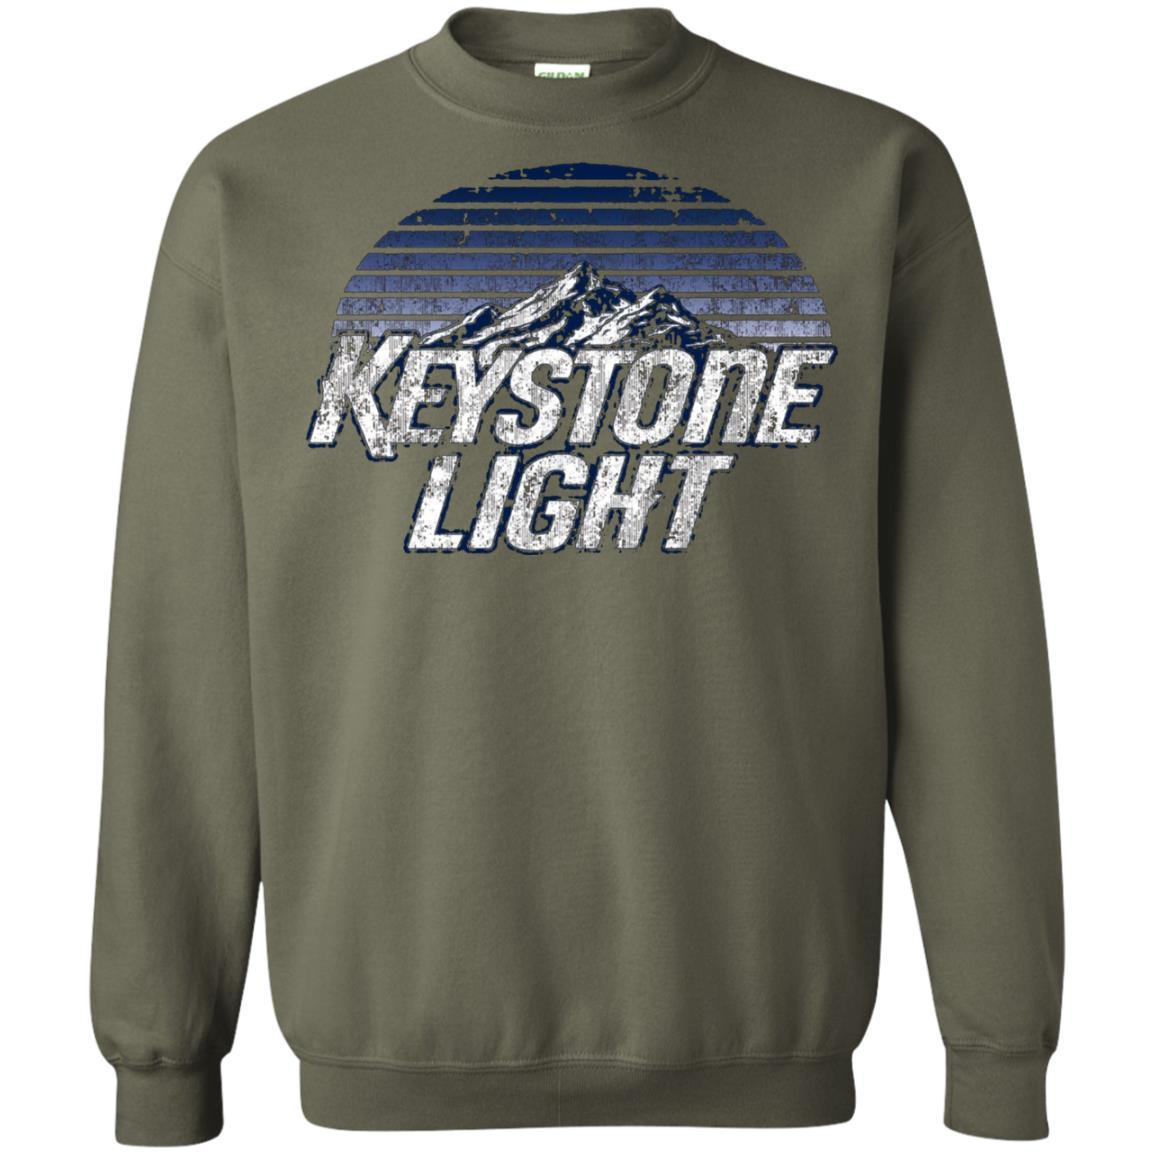 Keystone Light Beer Classic Look - Pullover Sweatshirt Military Green / 5XL